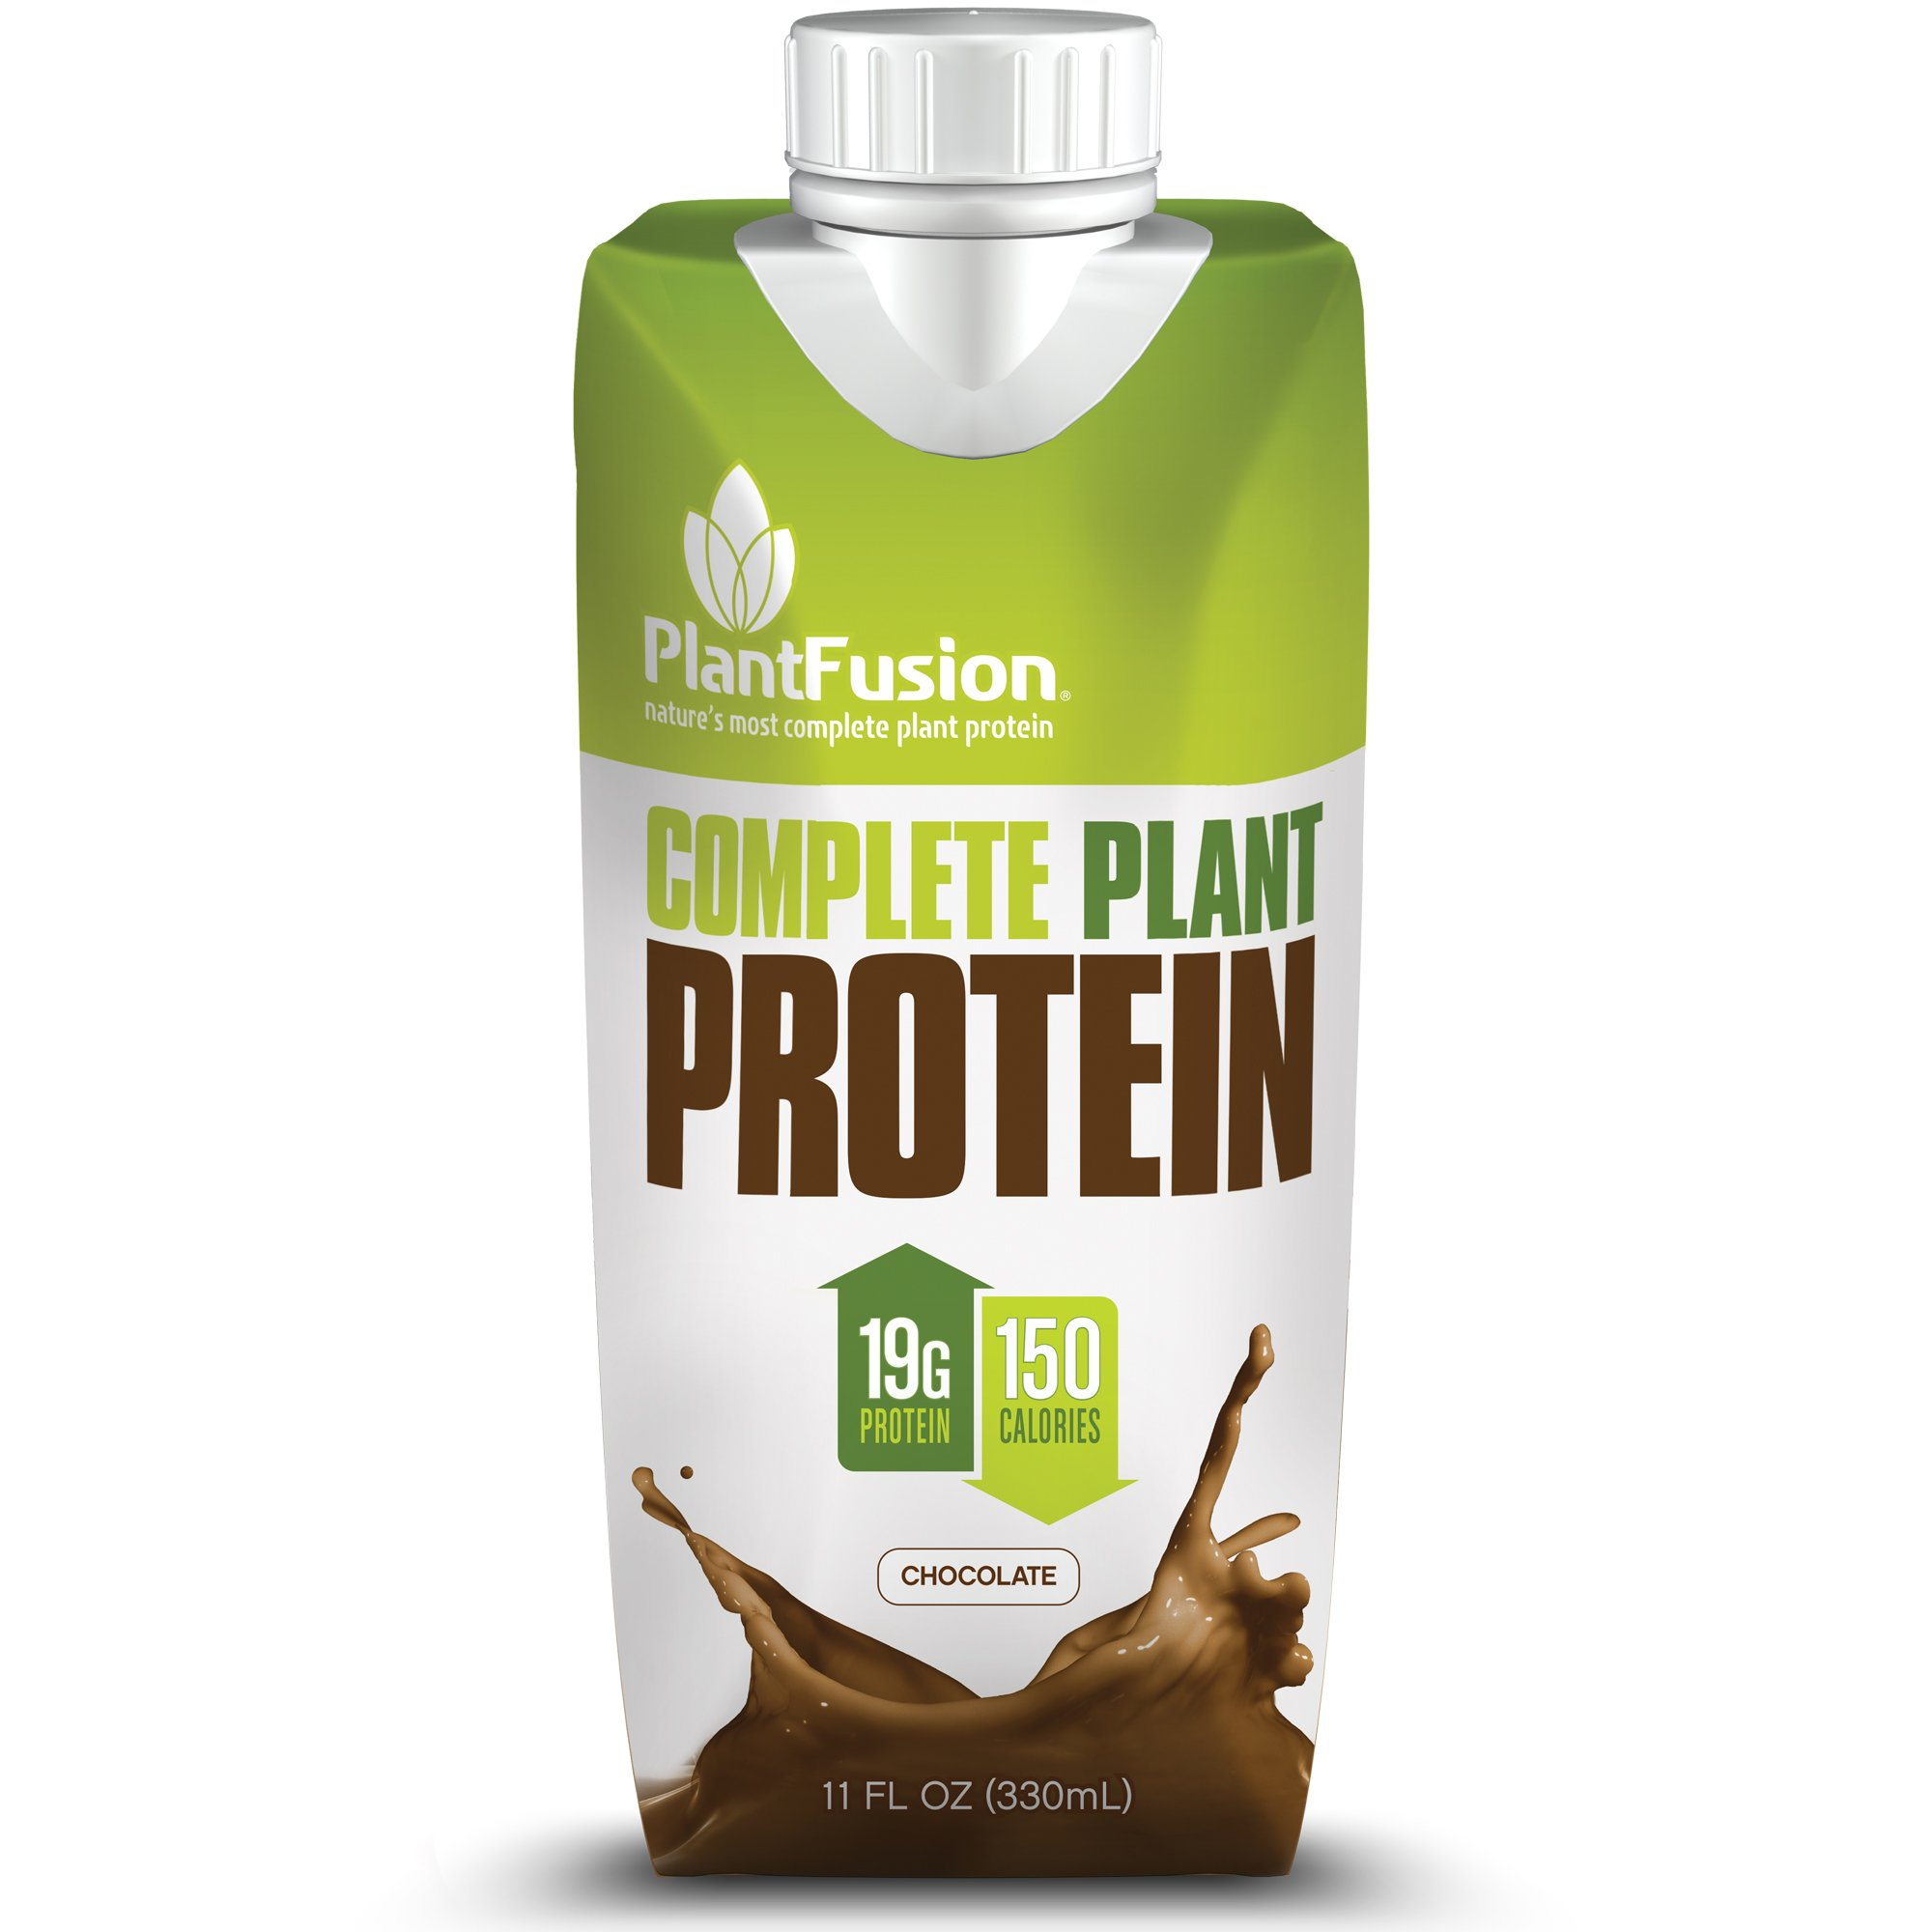 PlantFusion Complete Ready-to-Drink Plant-Based Protein Shake, Chocolate, 11 oz  Carton, 12 Count, 19 g of Protein, 150 Calories, Non-GMO, Gluten Free